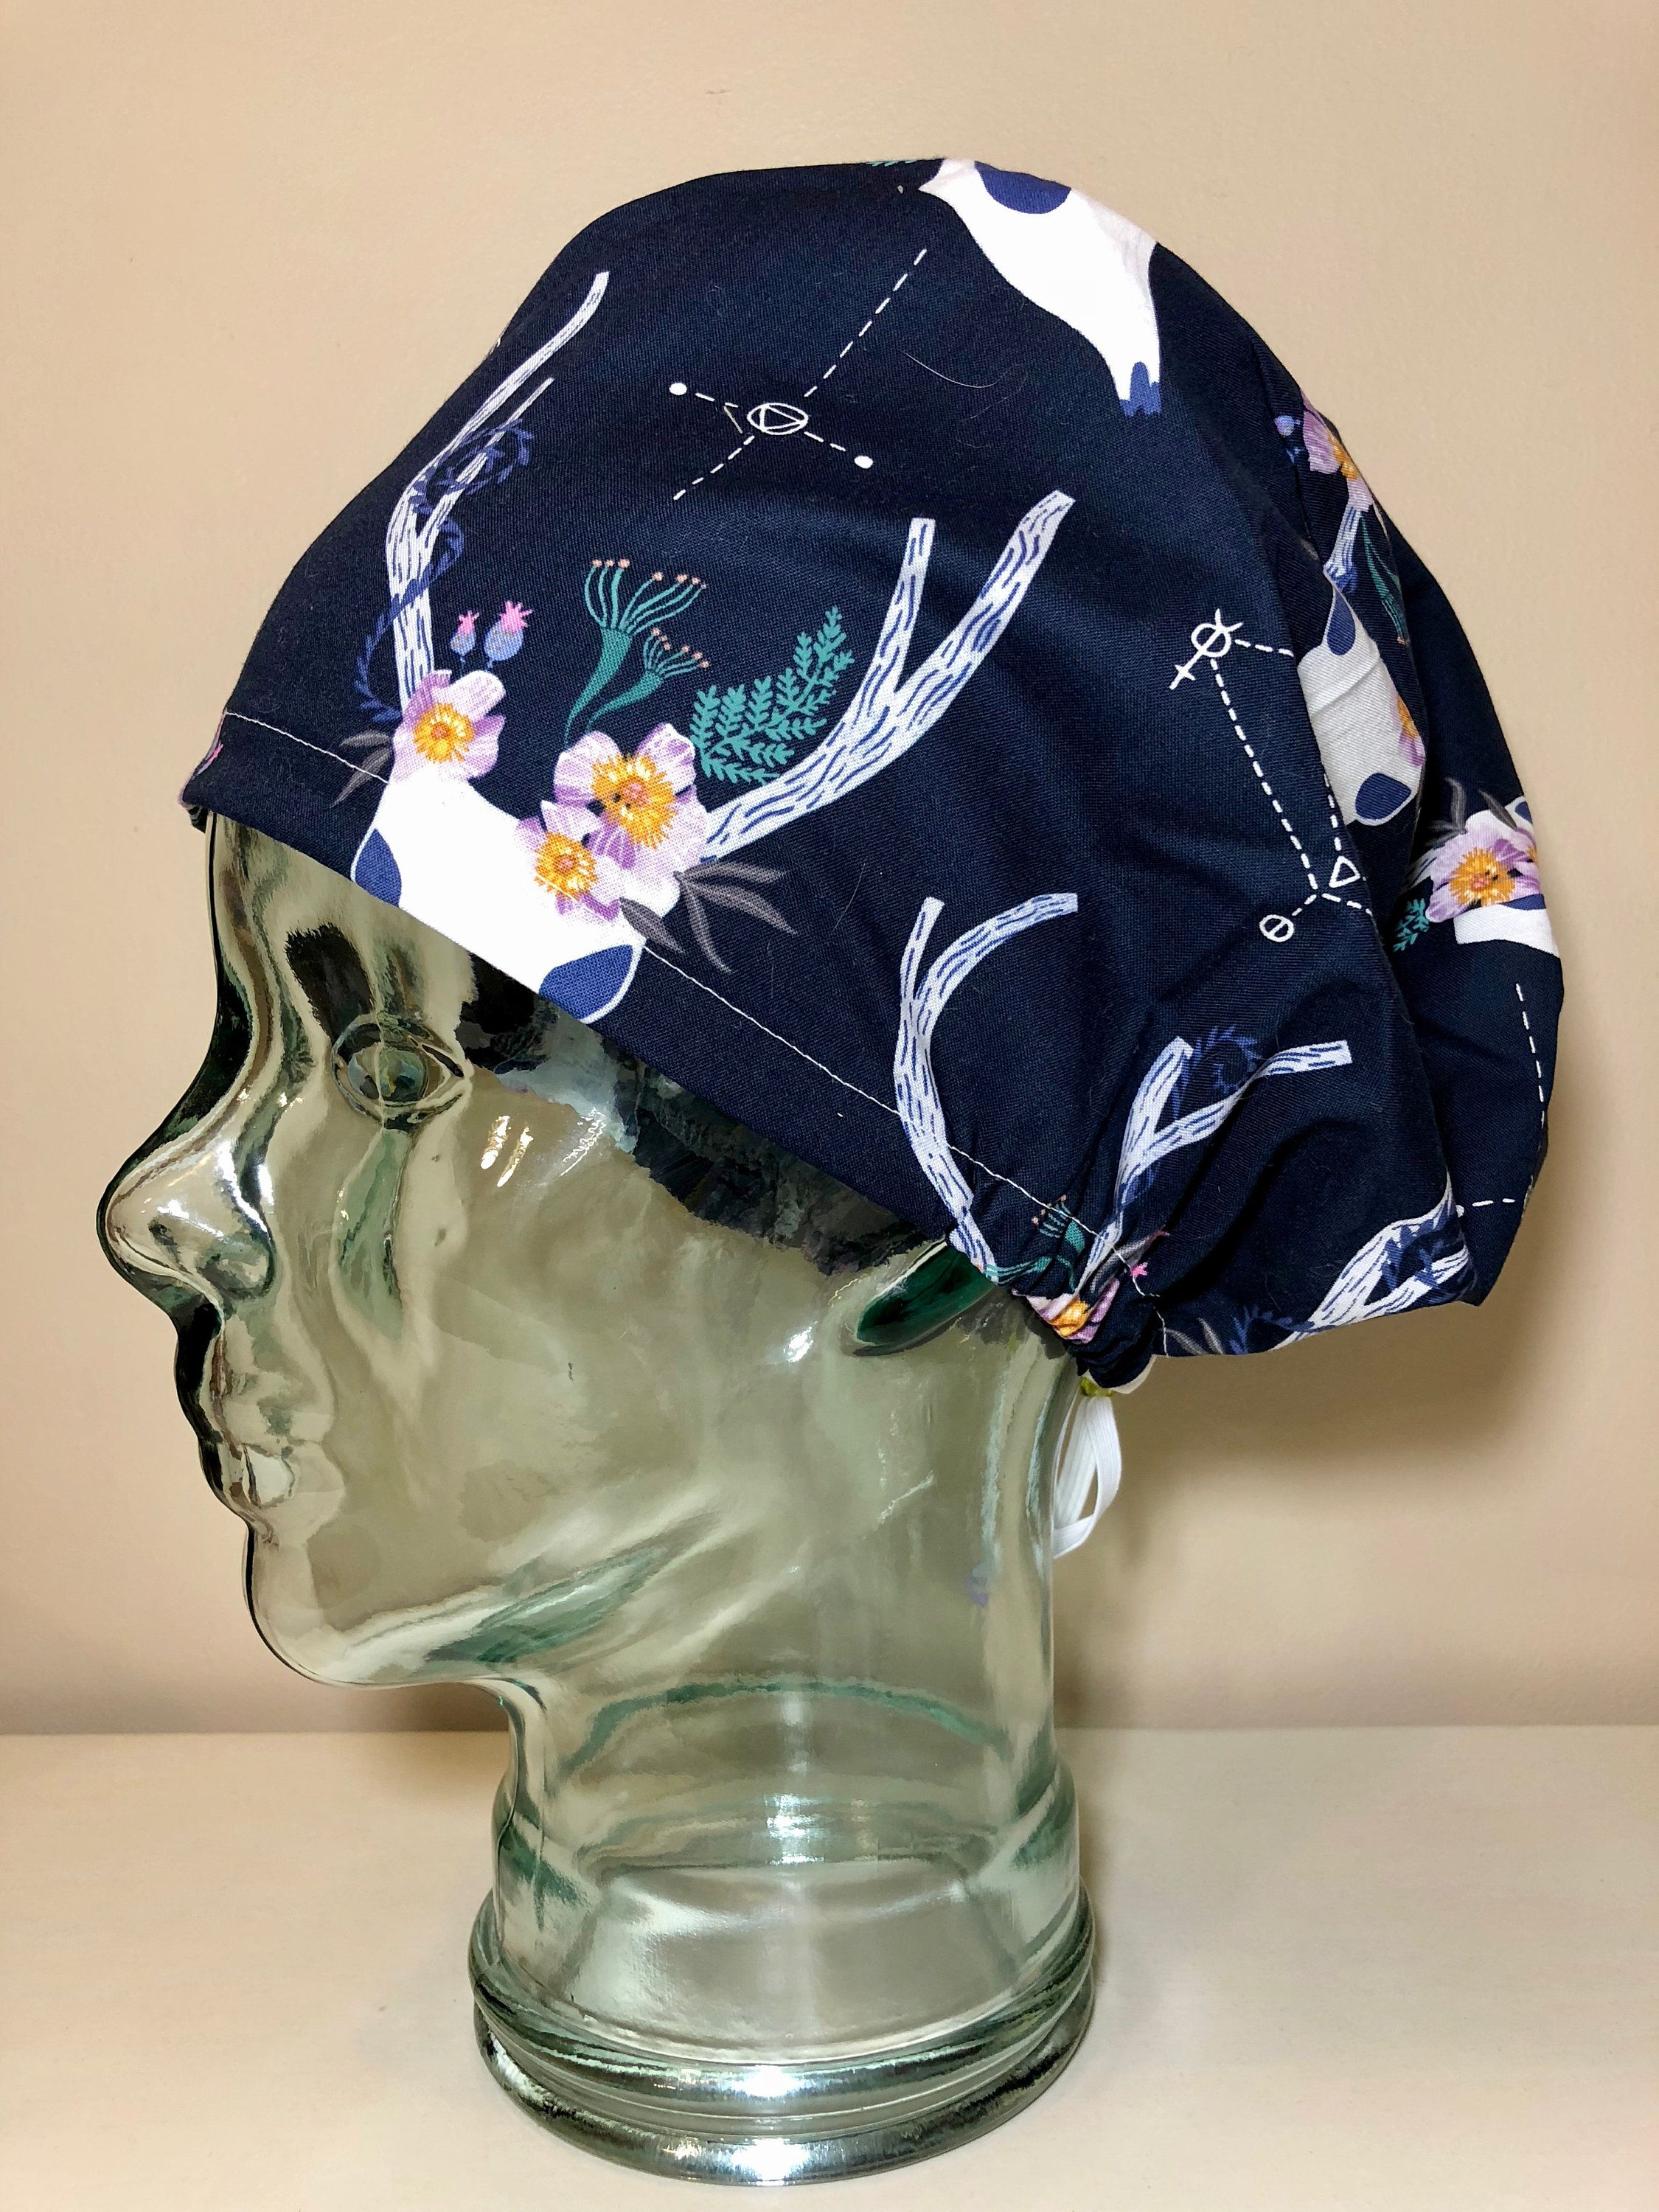 Phantom Deer in Navy Surgical Scrub Hat 289de94ee39